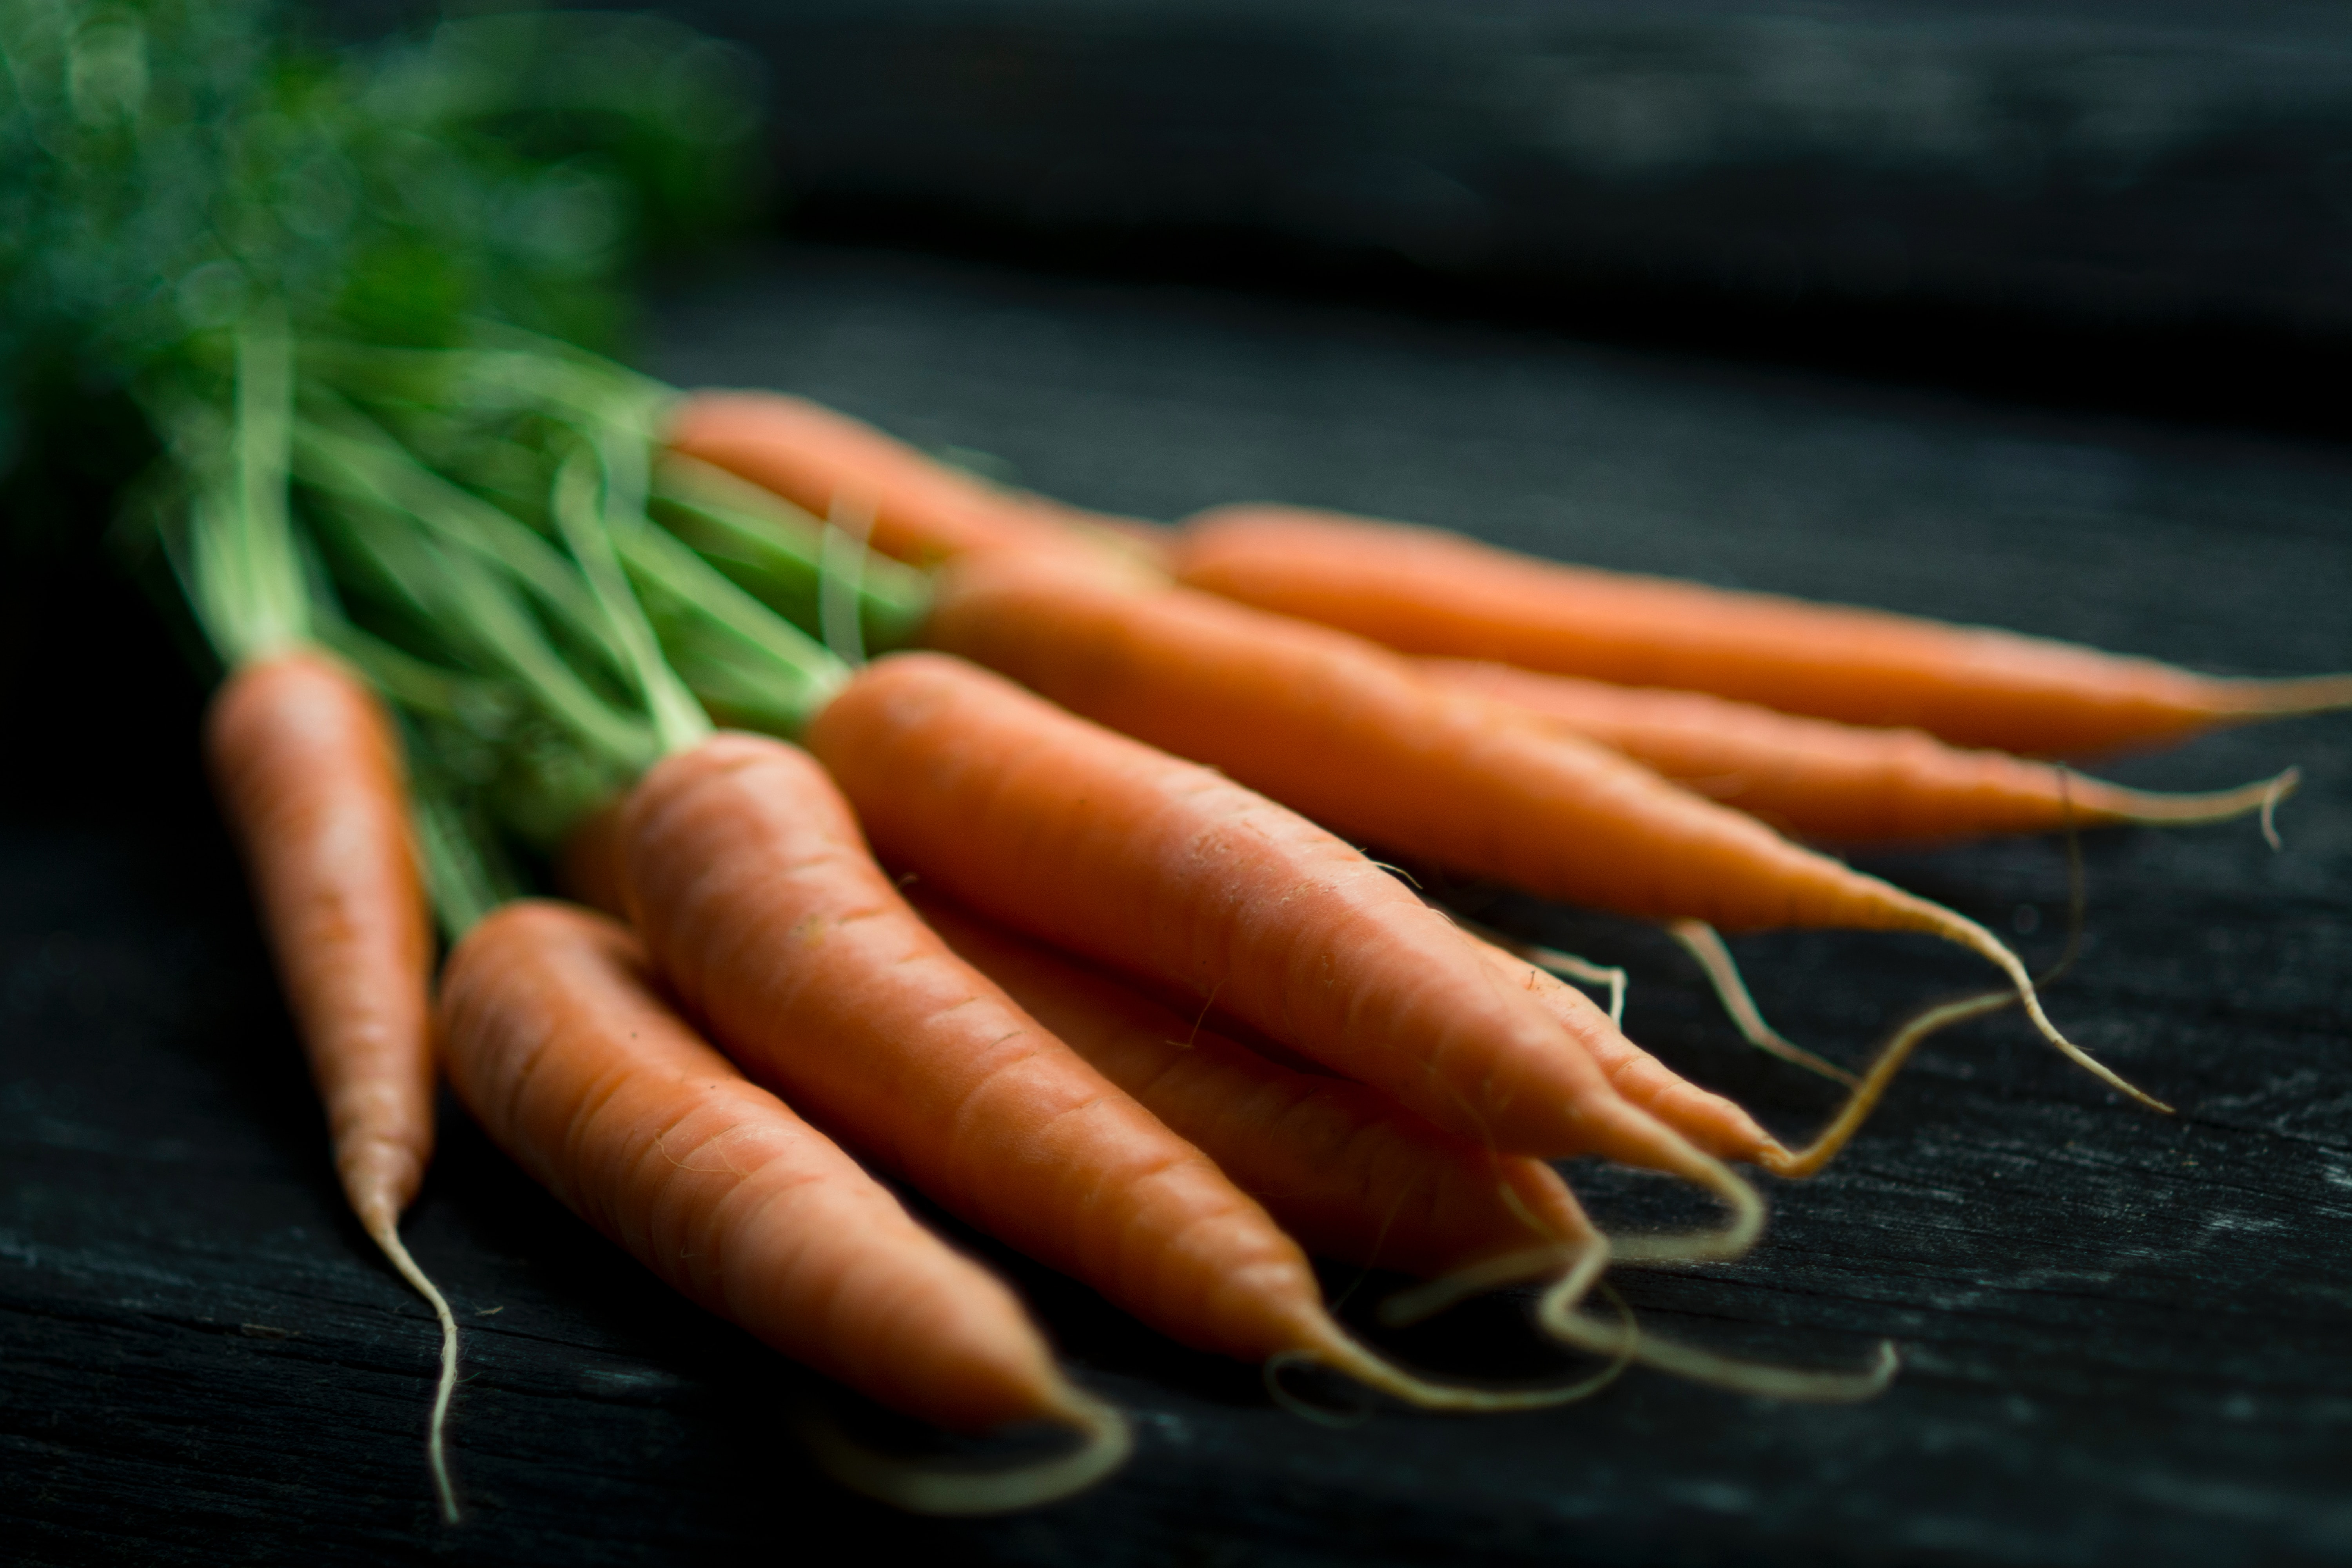 Carrots from whole foods